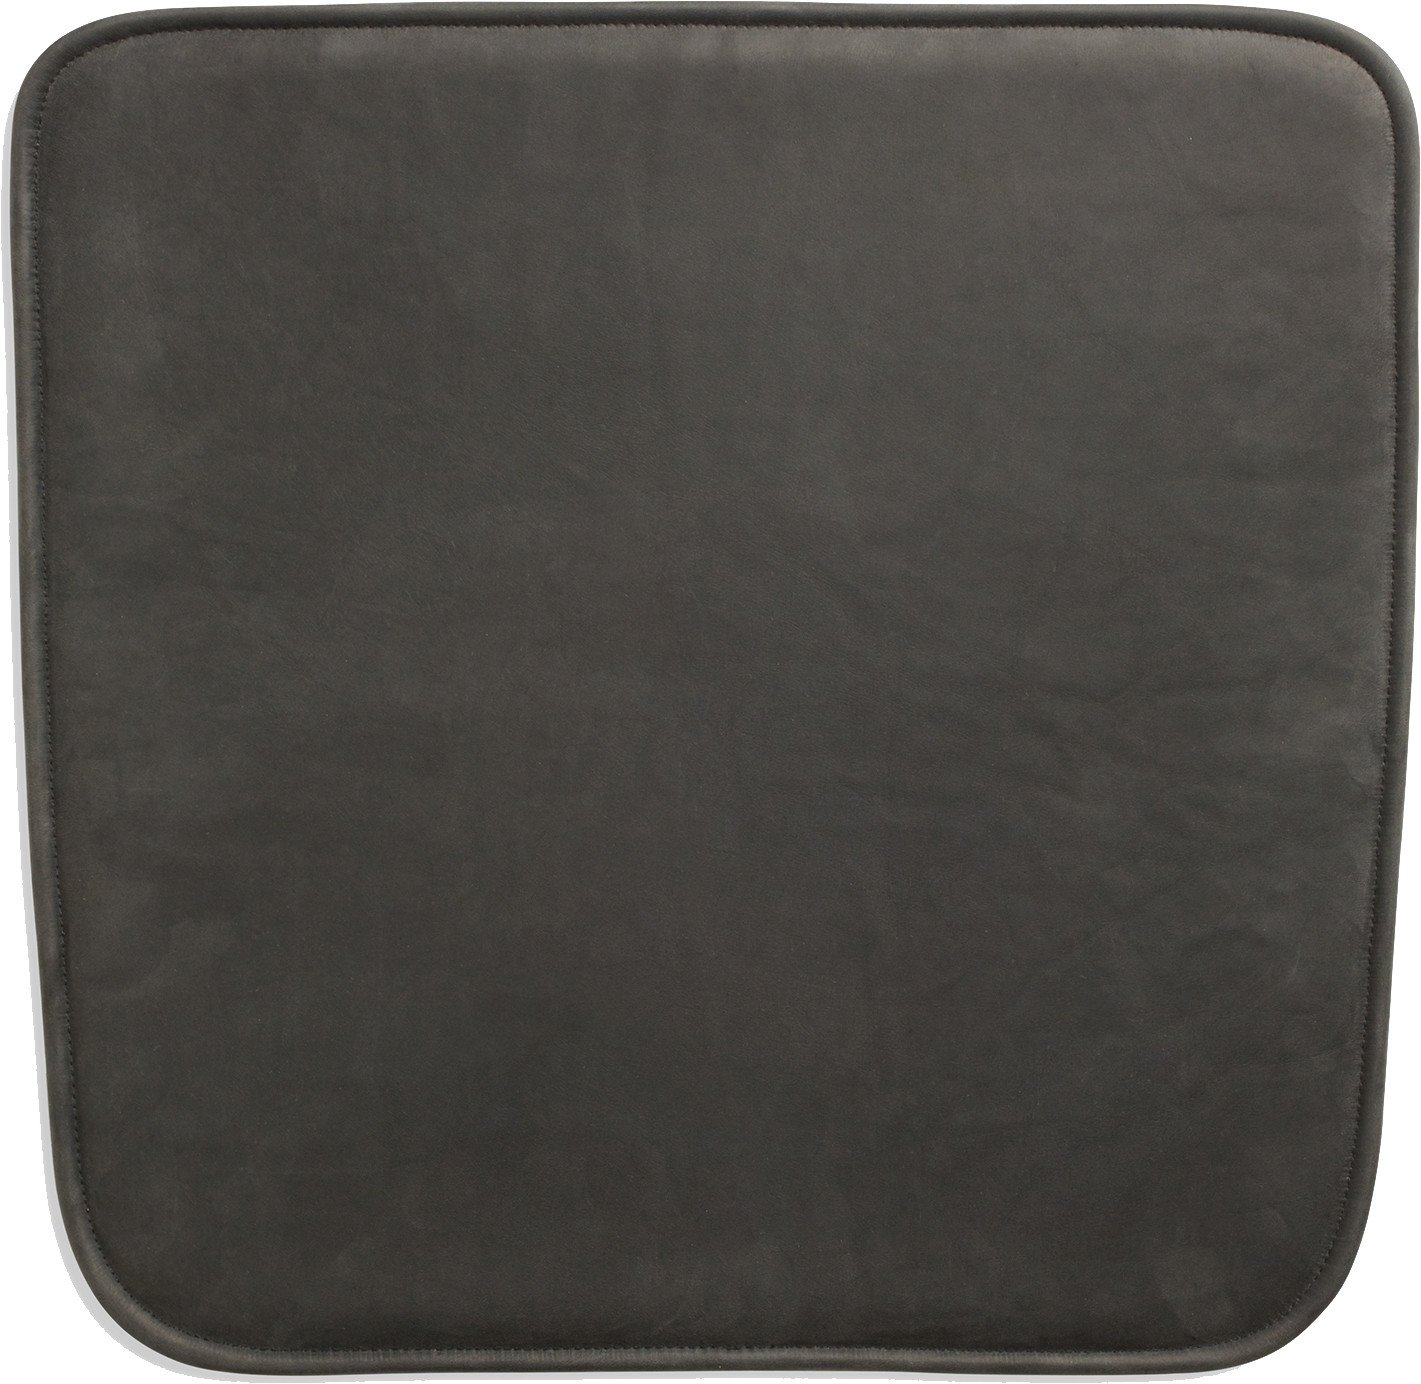 Hven Bar Stool Cushion Protected Leather Black by A. Björsing, Skagerak